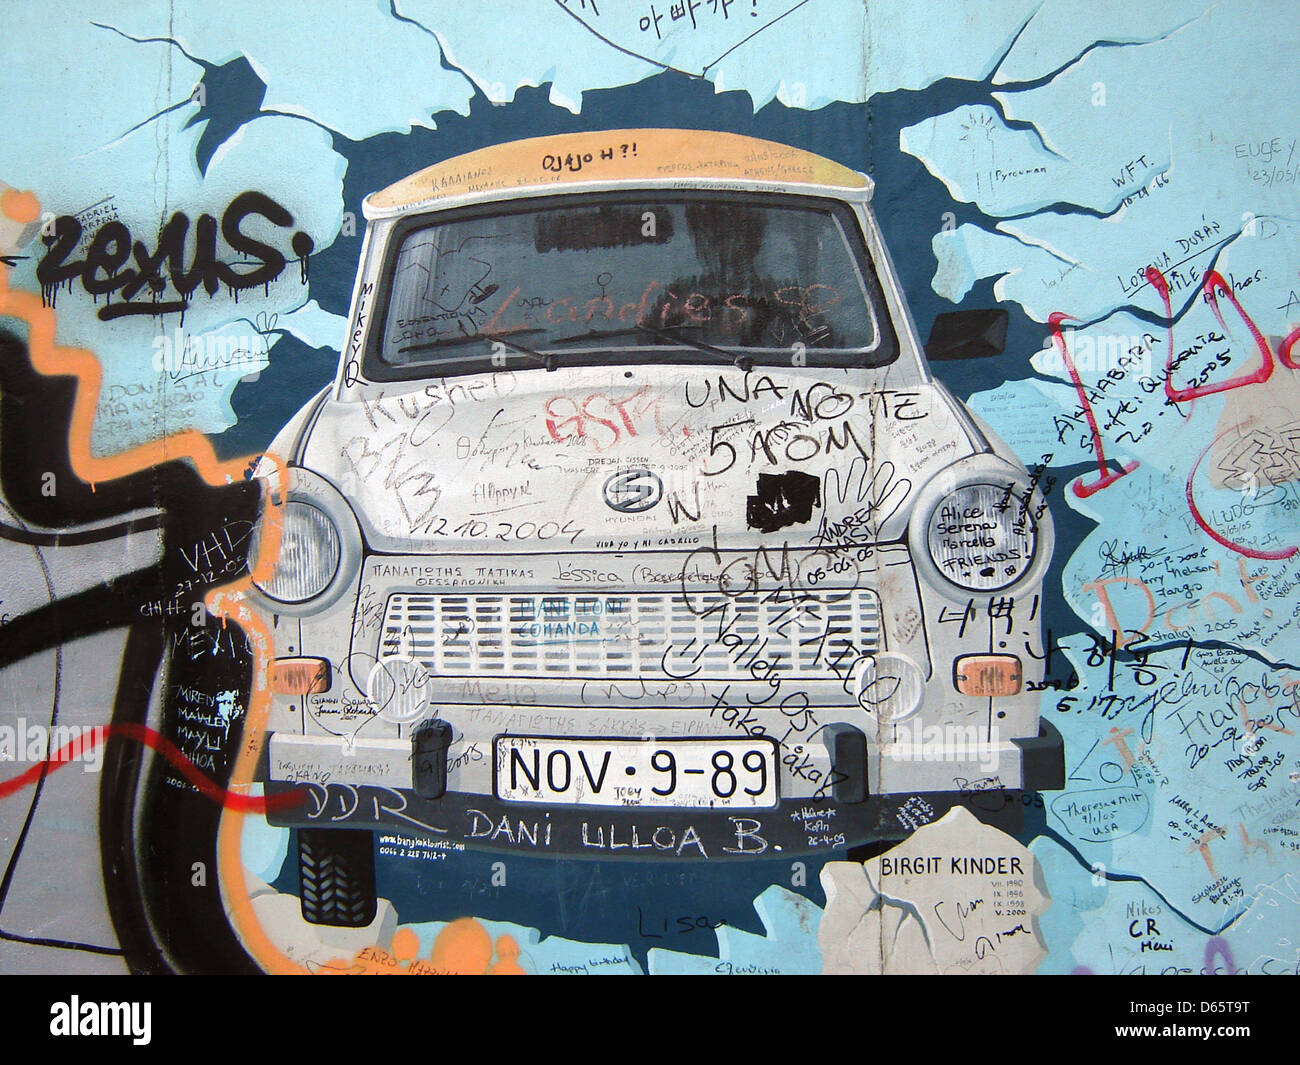 trabant,gdr,fall of the berlin wall,east side gallery Stock Photo